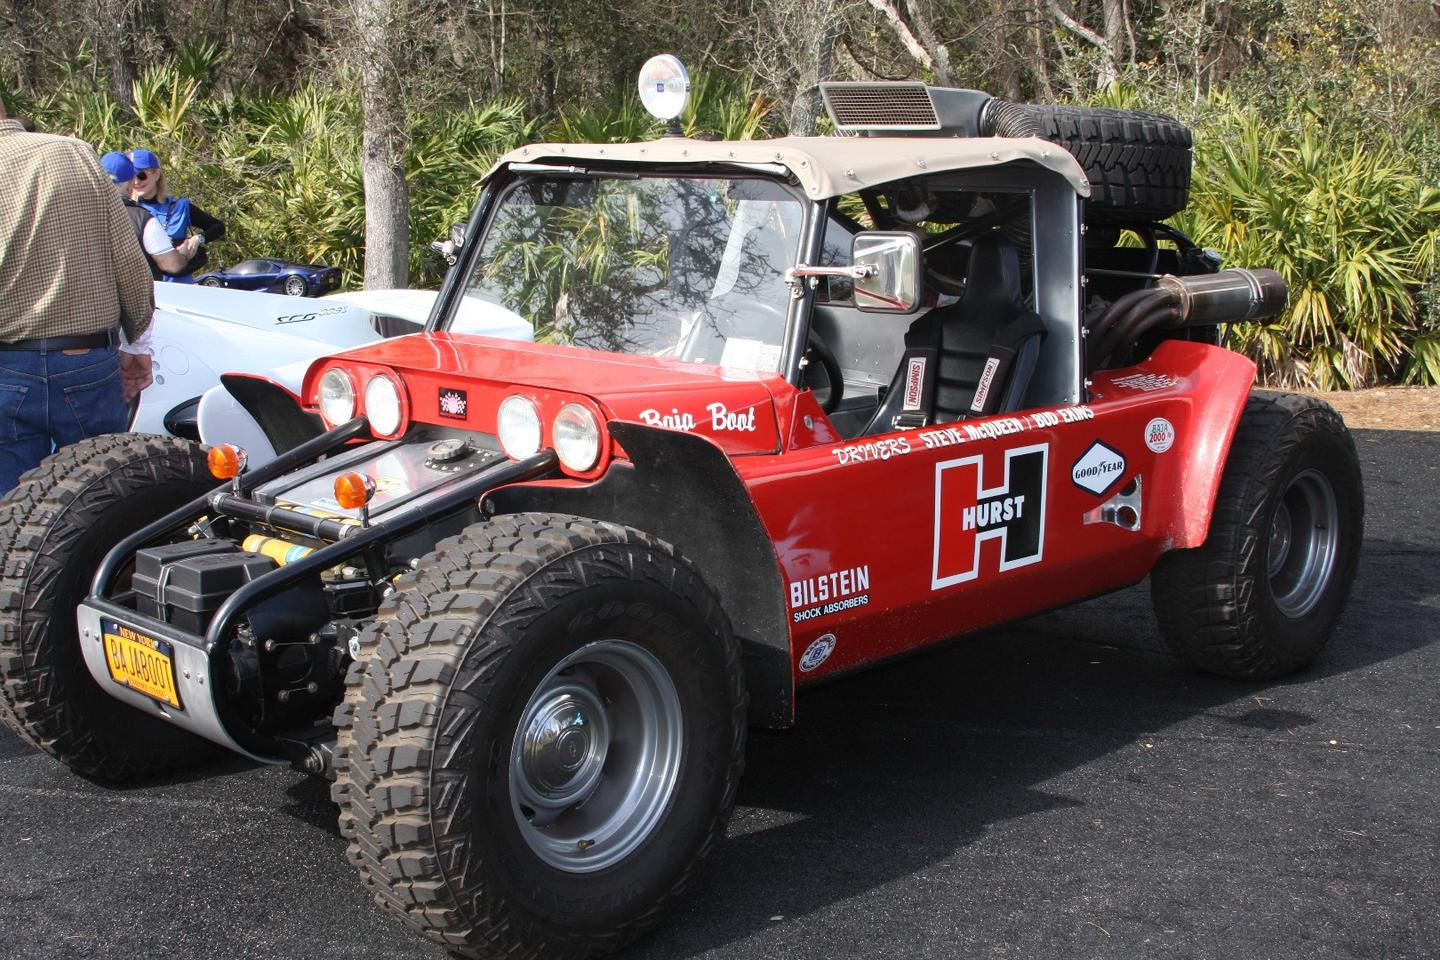 History in the flesh. This car was built for the 1967 National Off-Road Racing Association's 849-mile race dubbed the Mexican 1000. The race would go down in history as the first Baja 1000. Built by Vic Hickey with help from GM, this purpose-built racing buggy used a 450-hp 350 cubic-inch V8 and GM Hydra-Matic auto, 4-wheel discs, front and rear independent Torsion Bar Suspension and only got around 25 percent of the distance. Then actor/racer Steve McQueen and Bud Ekins bought it and raced it and two years later, it won. The car was purchased two years ago at Pebble Beach by film director/car aficianado James Glickenhaus (Scuderia Cameron Glickenhaus) who made it street legal. Nice wheels, Mr Glickenhaus!!!